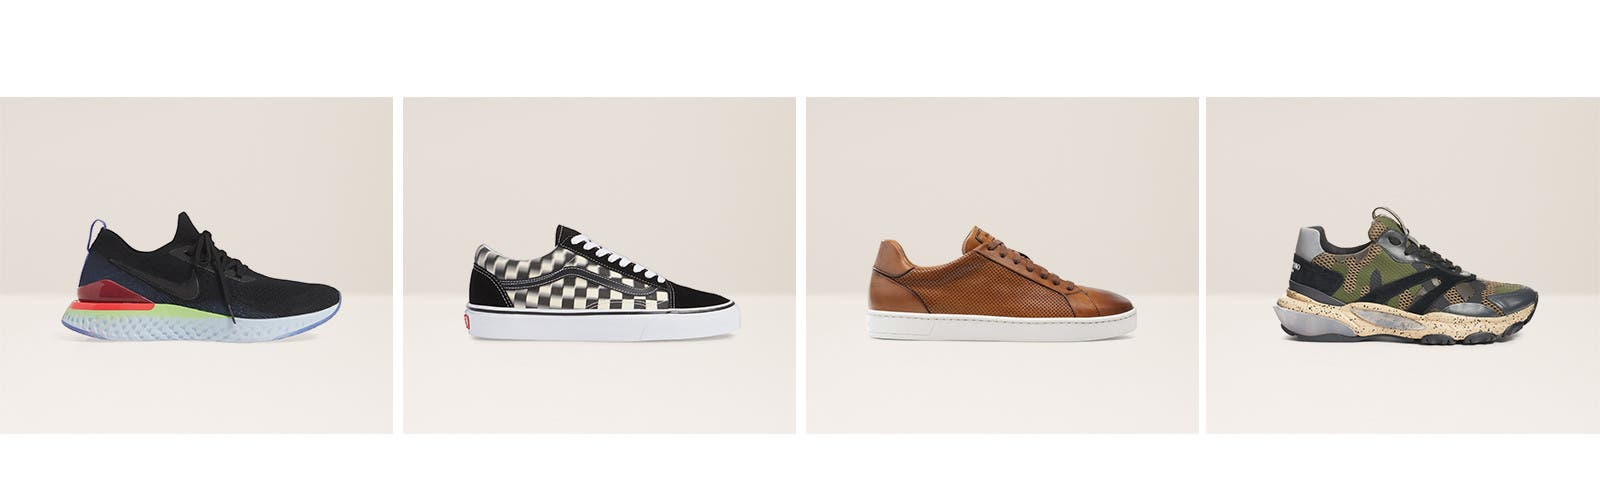 Get your kicks: men's sneakers.